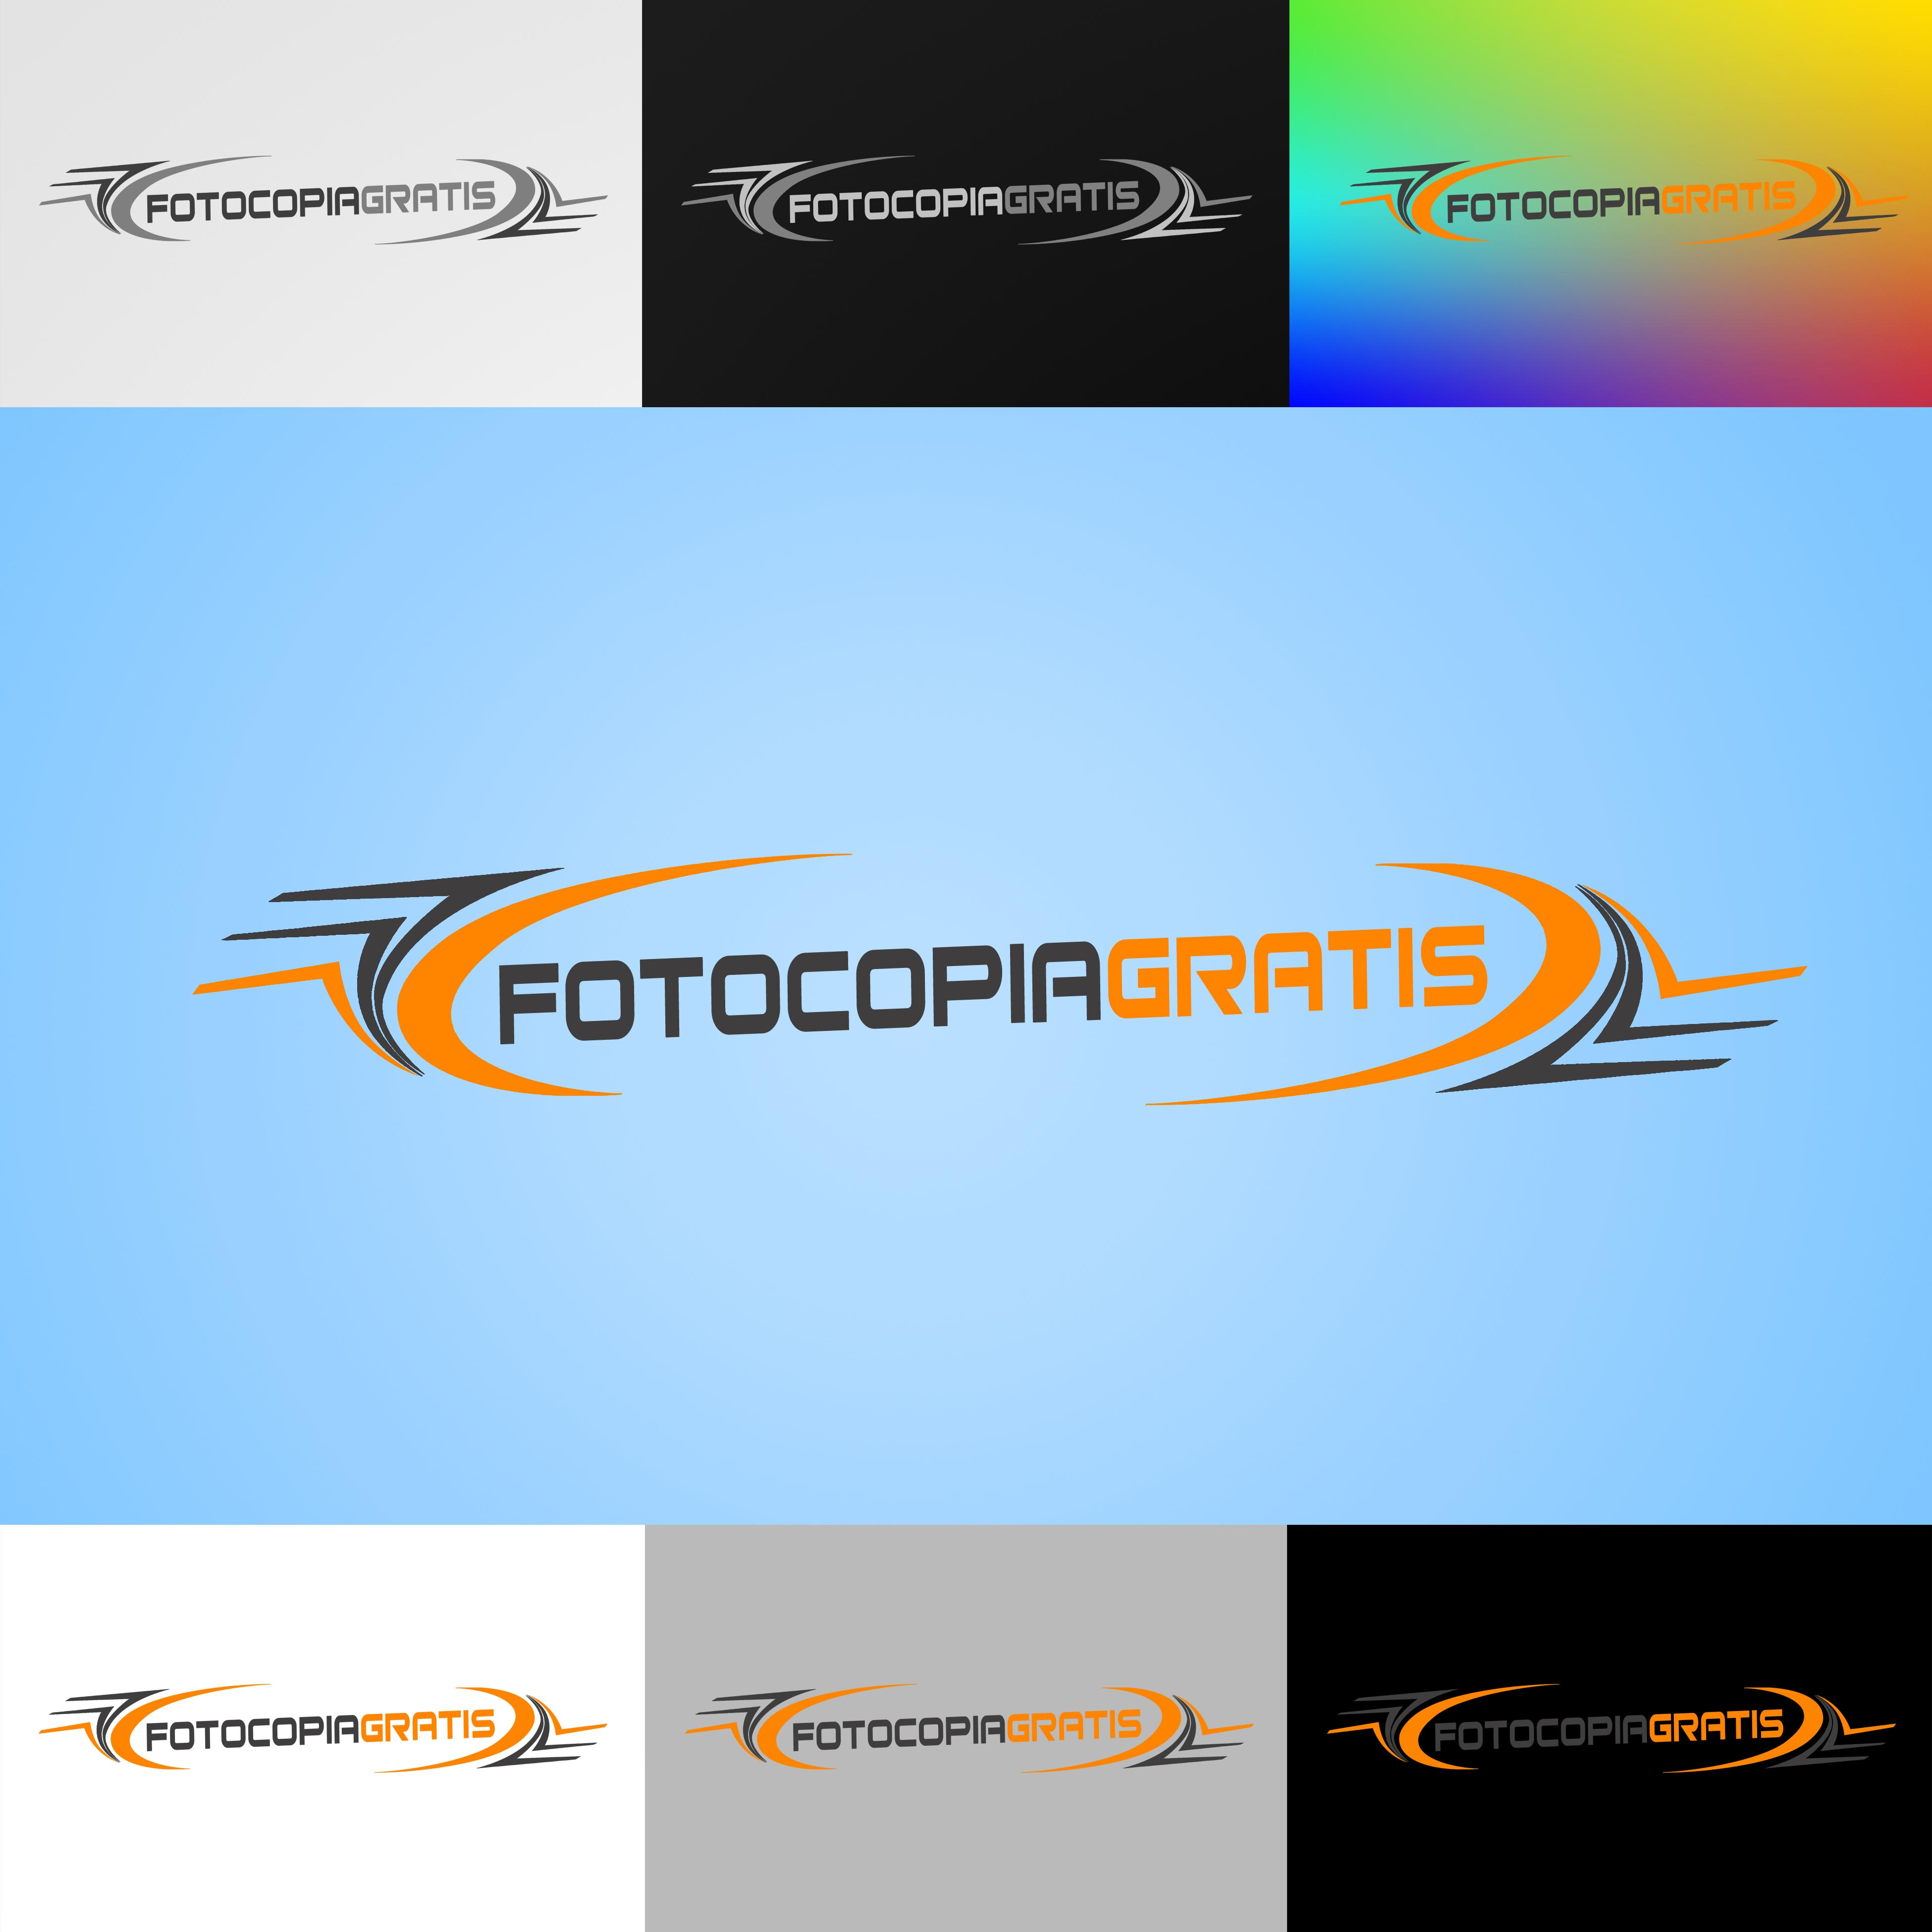 Logo Design by Cesar III Sotto - Entry No. 205 in the Logo Design Contest Inspiring Logo Design for Fotocopiagratis.